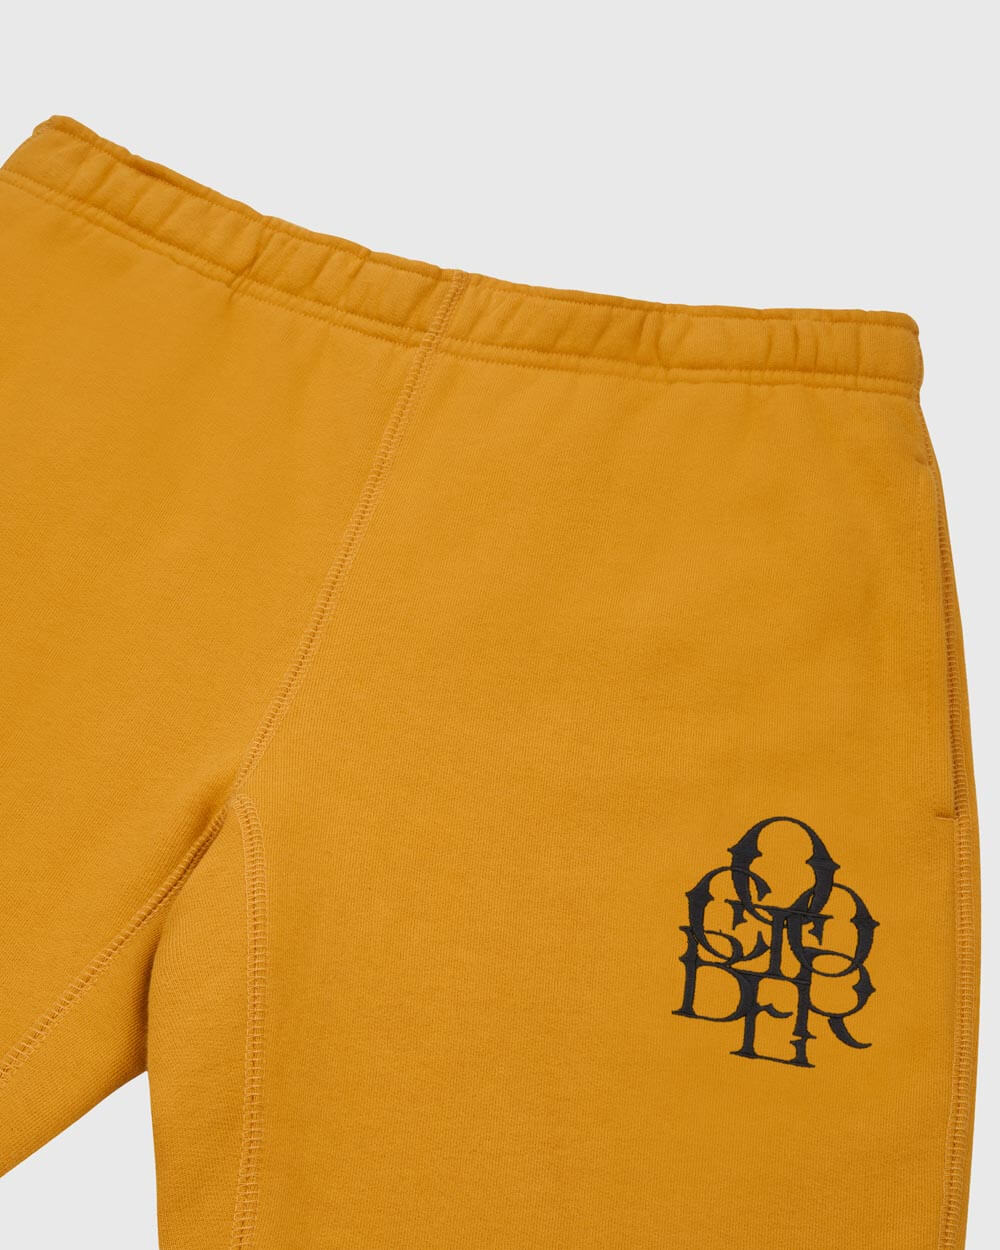 OCTOBER LETTERLOCK SWEATPANT - MUSTARD